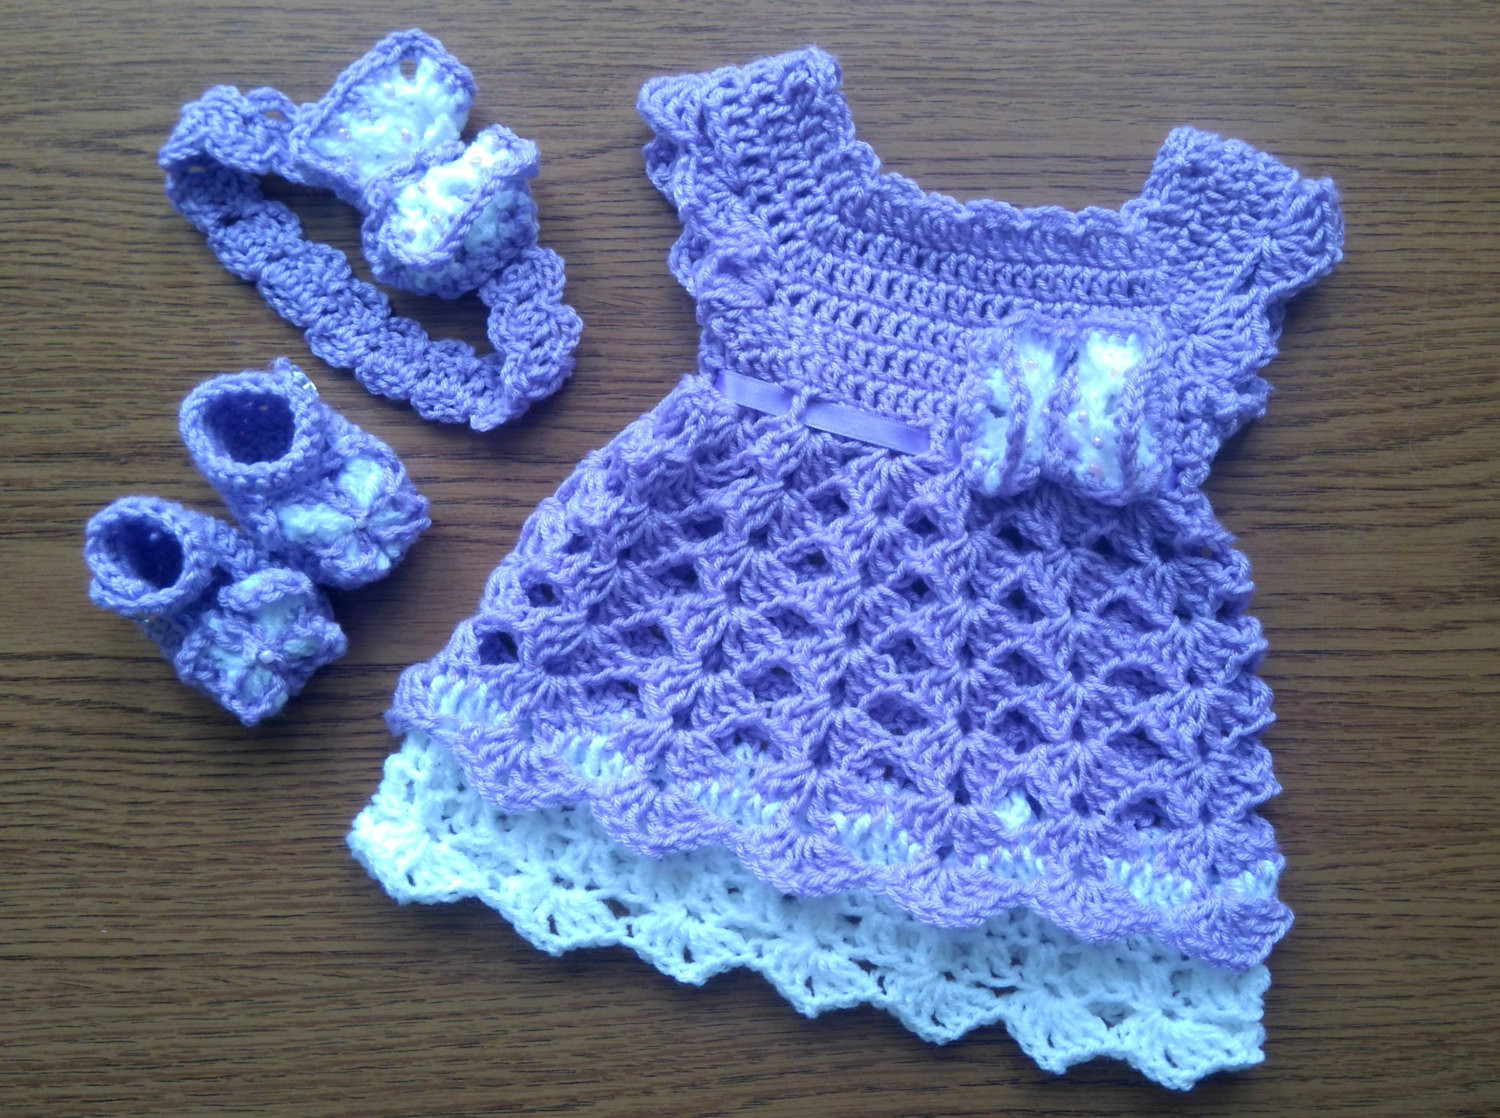 Crochet Baby Outfits Inspirational Purple Baby Girl Ing Home Outfit Crochet Baby Girl Of Marvelous 44 Photos Crochet Baby Outfits